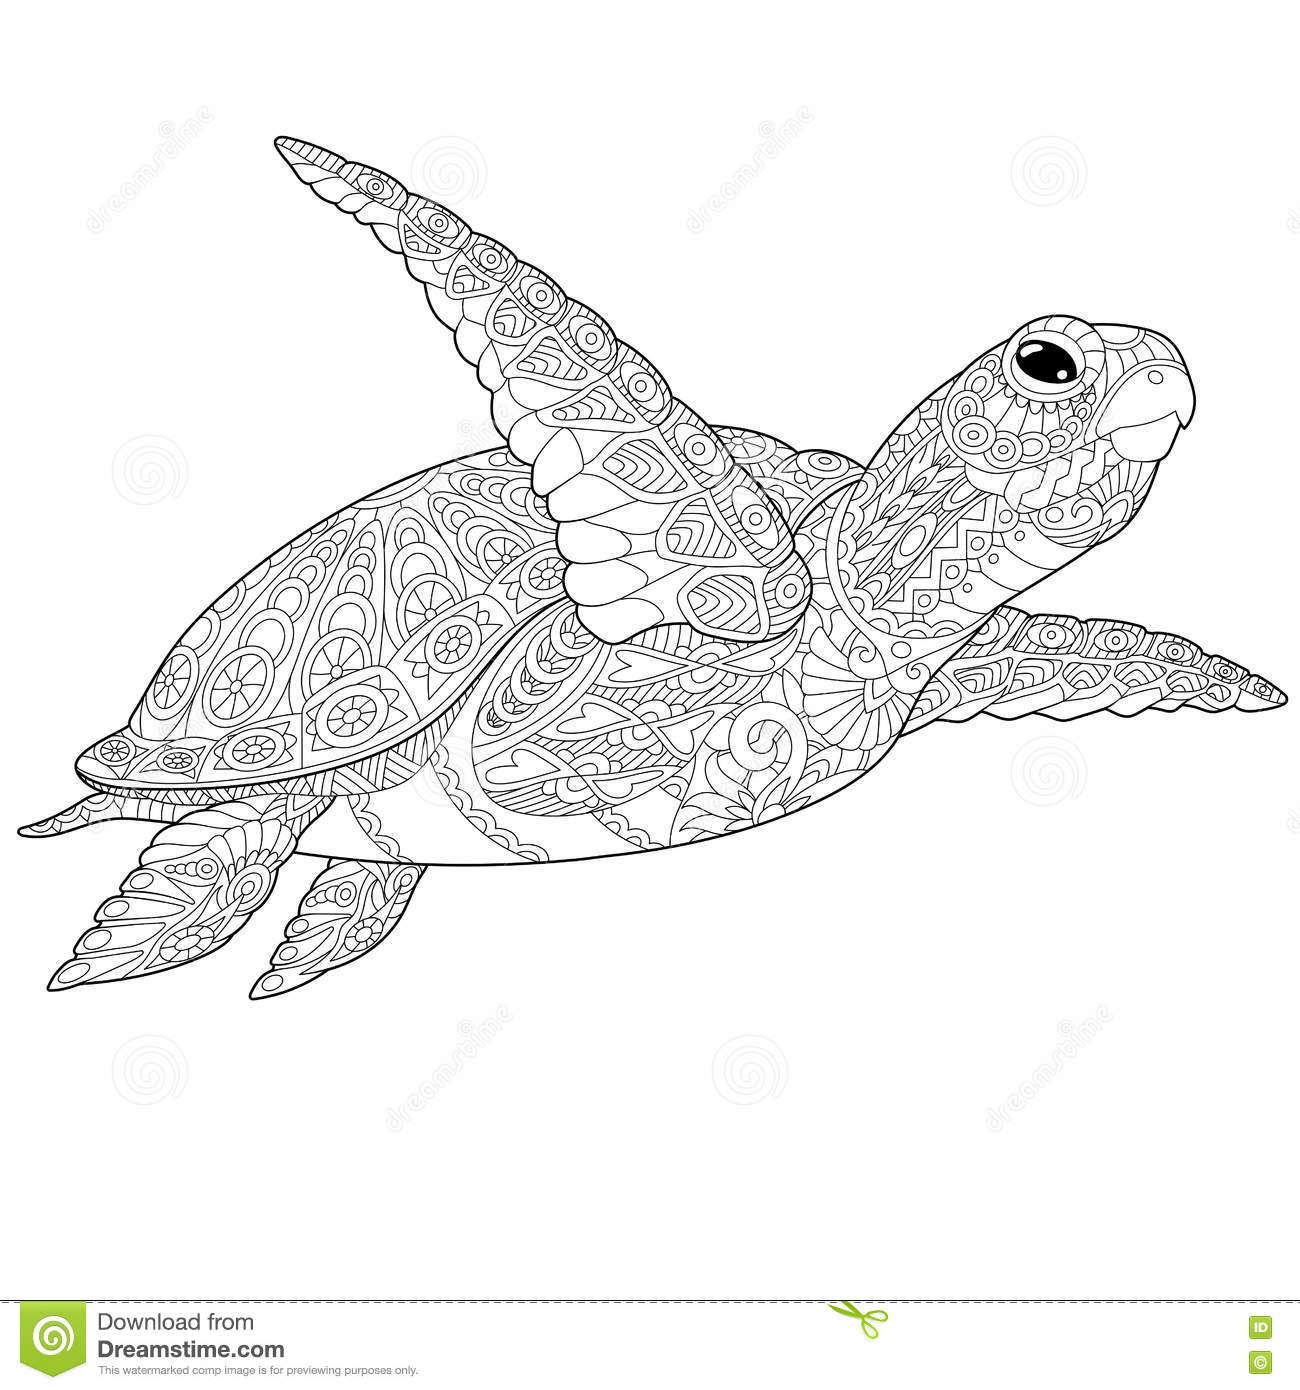 Stylized Underwater Turtle Tortoise Freehand Sketch For Adult Anti Stress Coloring Book Page With Doodle And Zentangle Elements